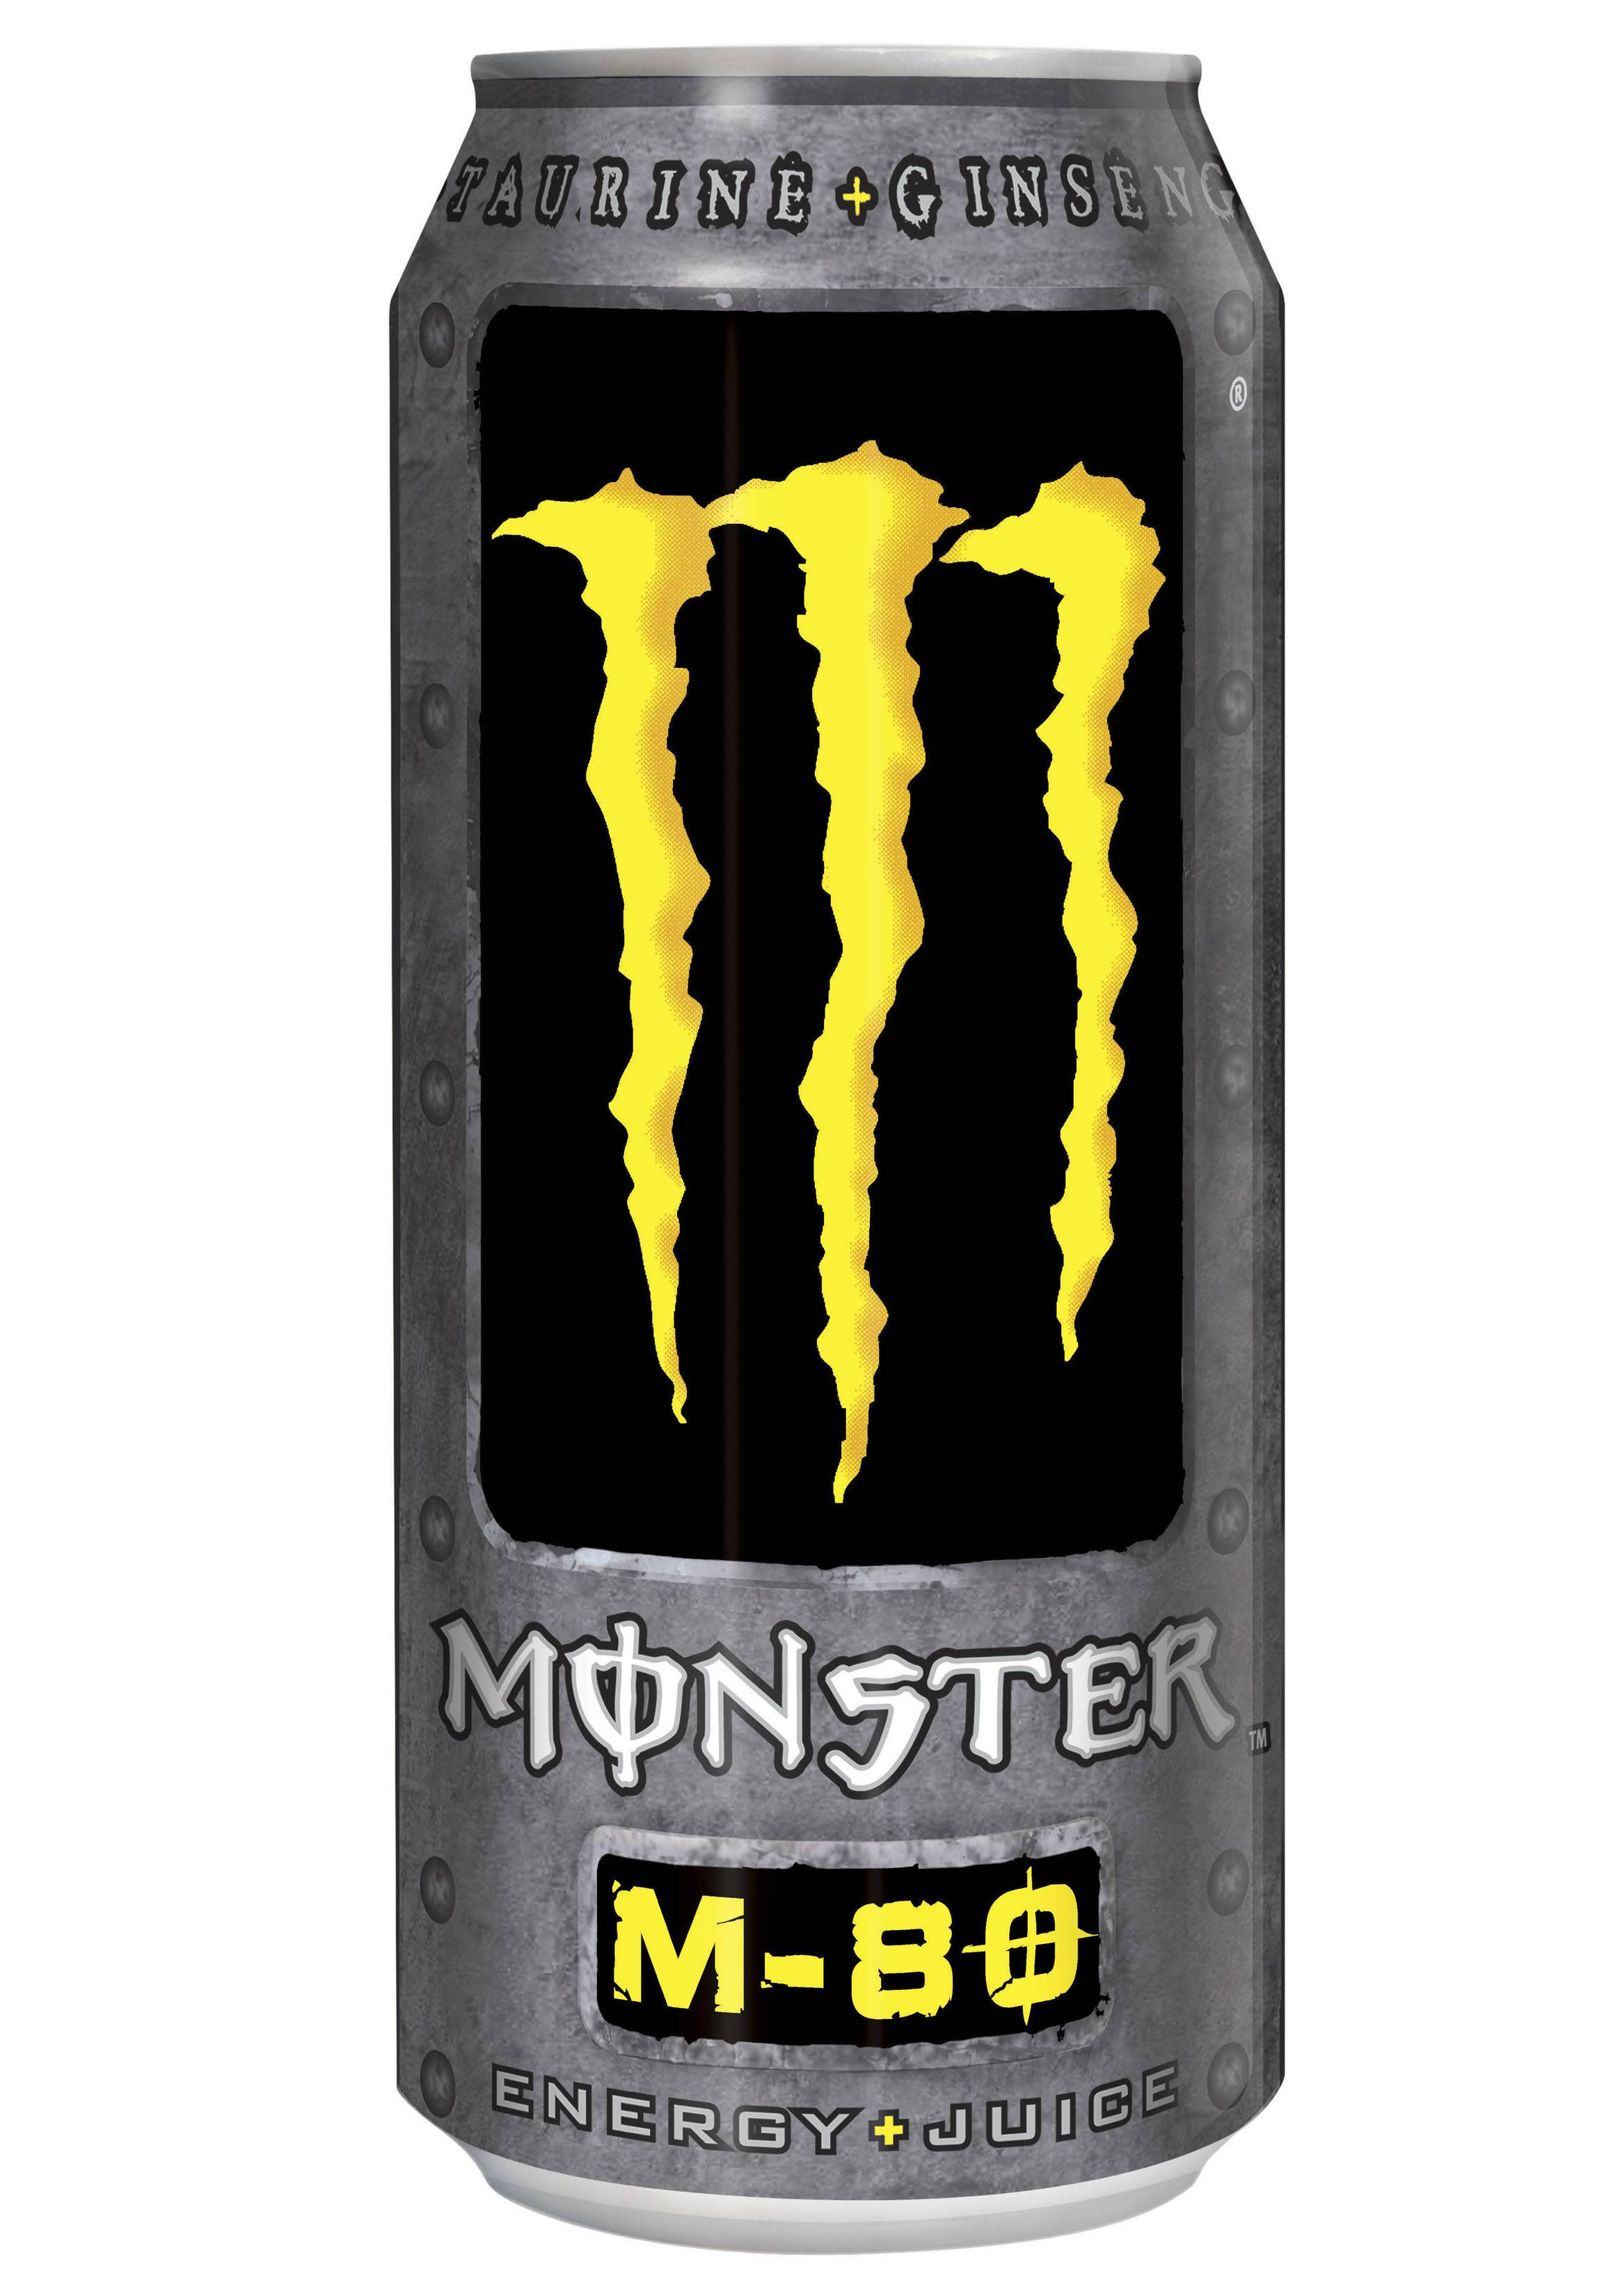 Coca-Cola is buying a 16.7 percent stake in Monster Beverage for $2.15 billion, with the world's biggest soda maker hoping to benefit from the rapid growth of energy drinks in recent years.